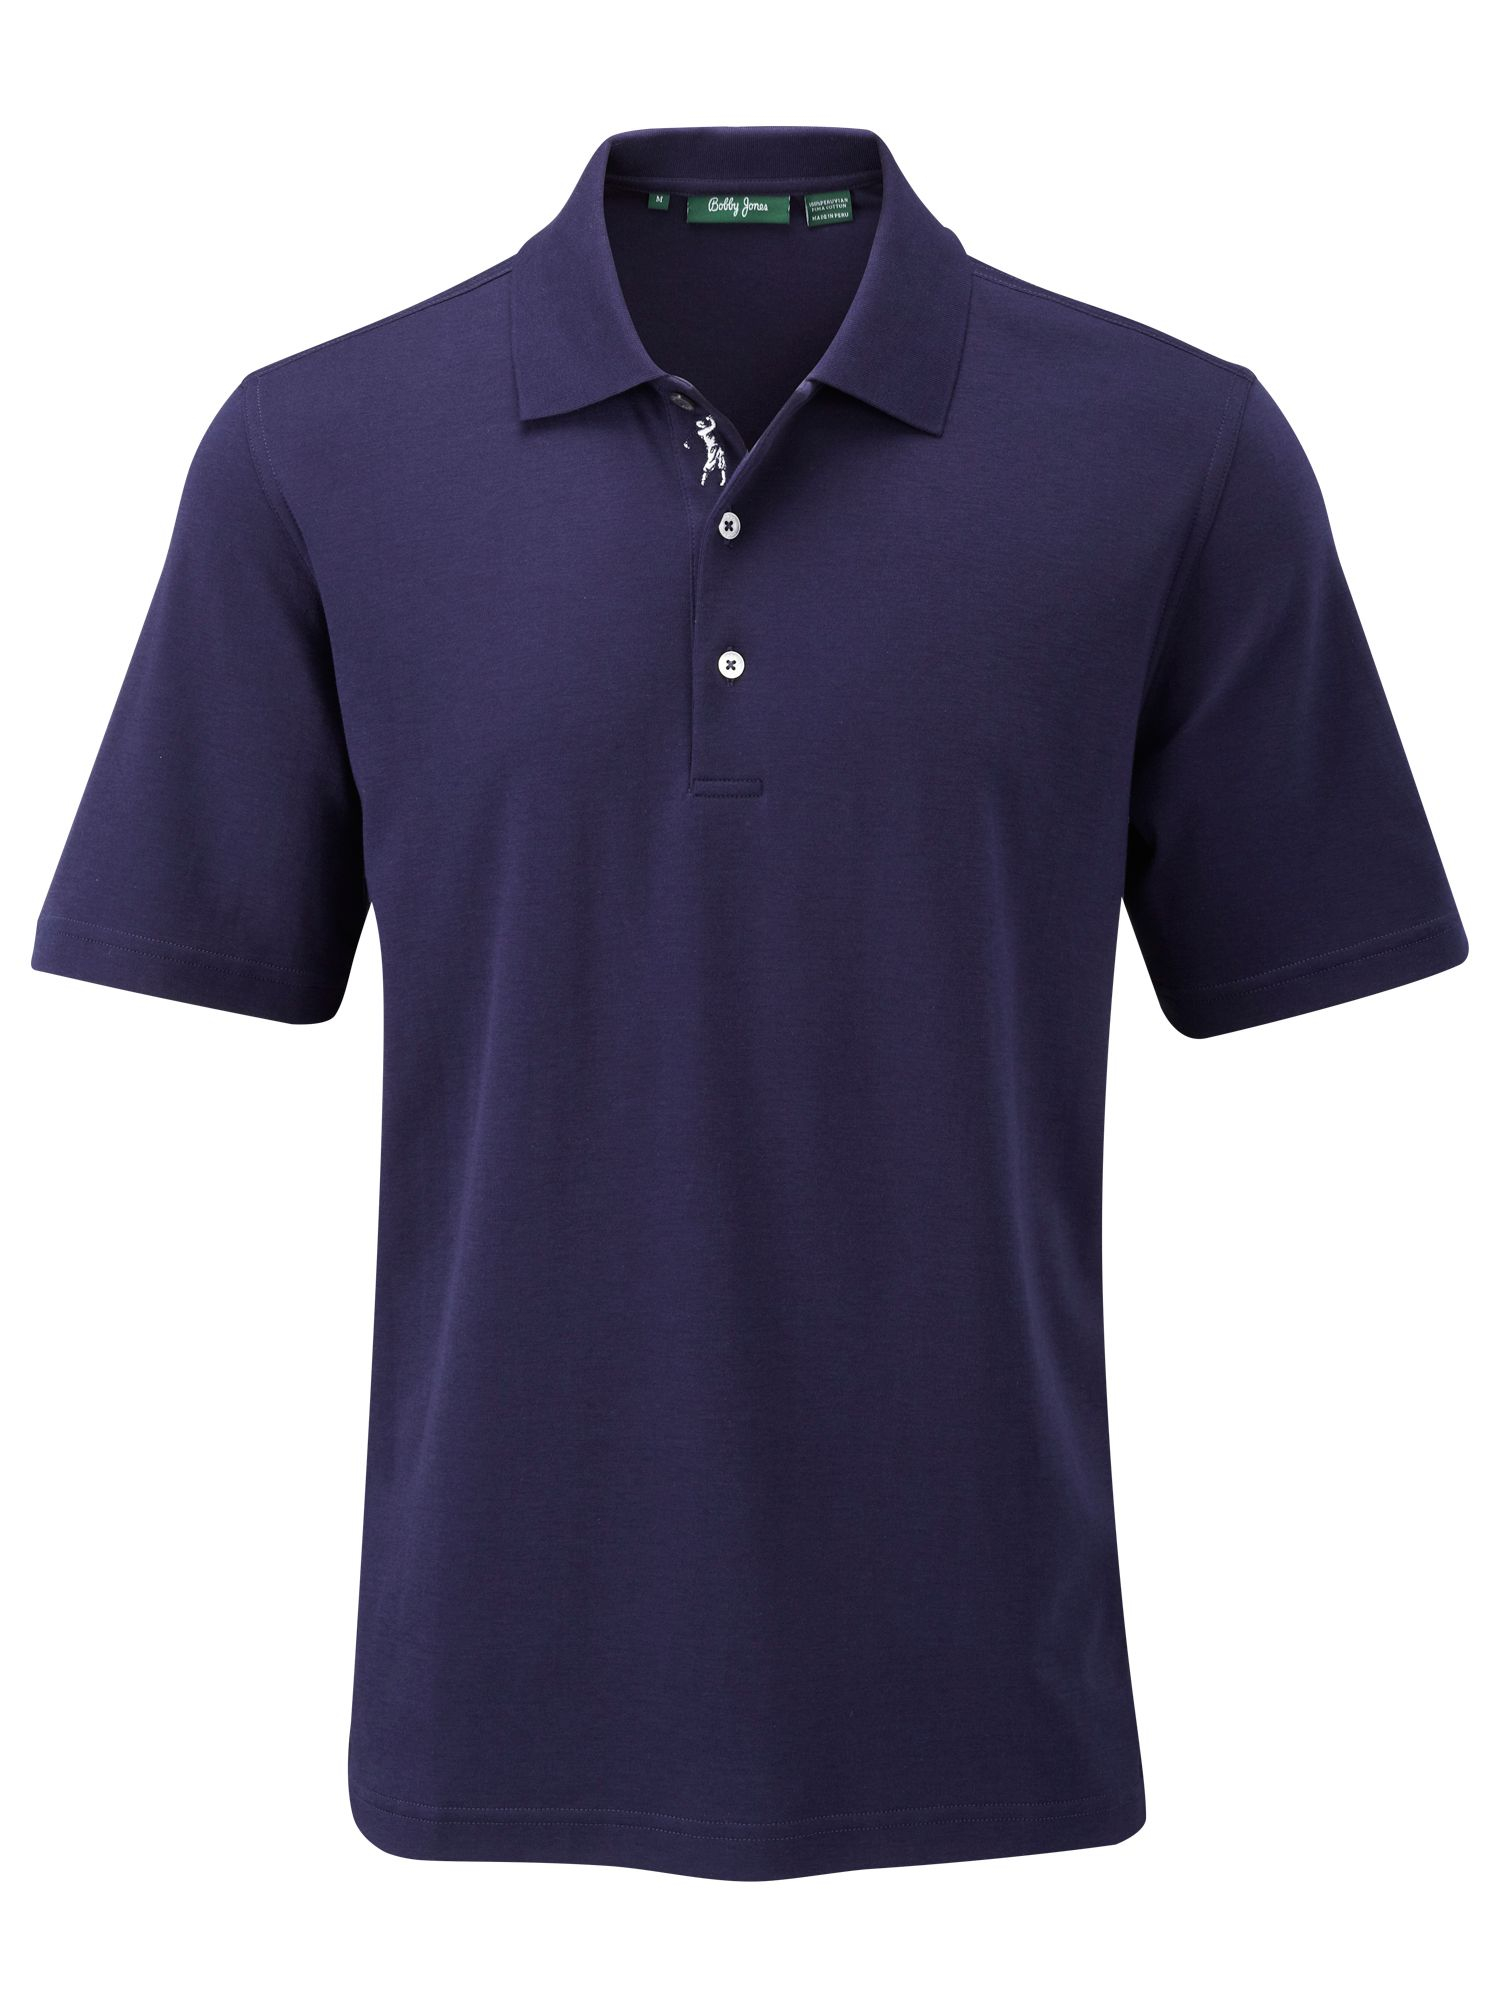 3 button embroidery polo shirt house of fraser for 3 button polo shirts